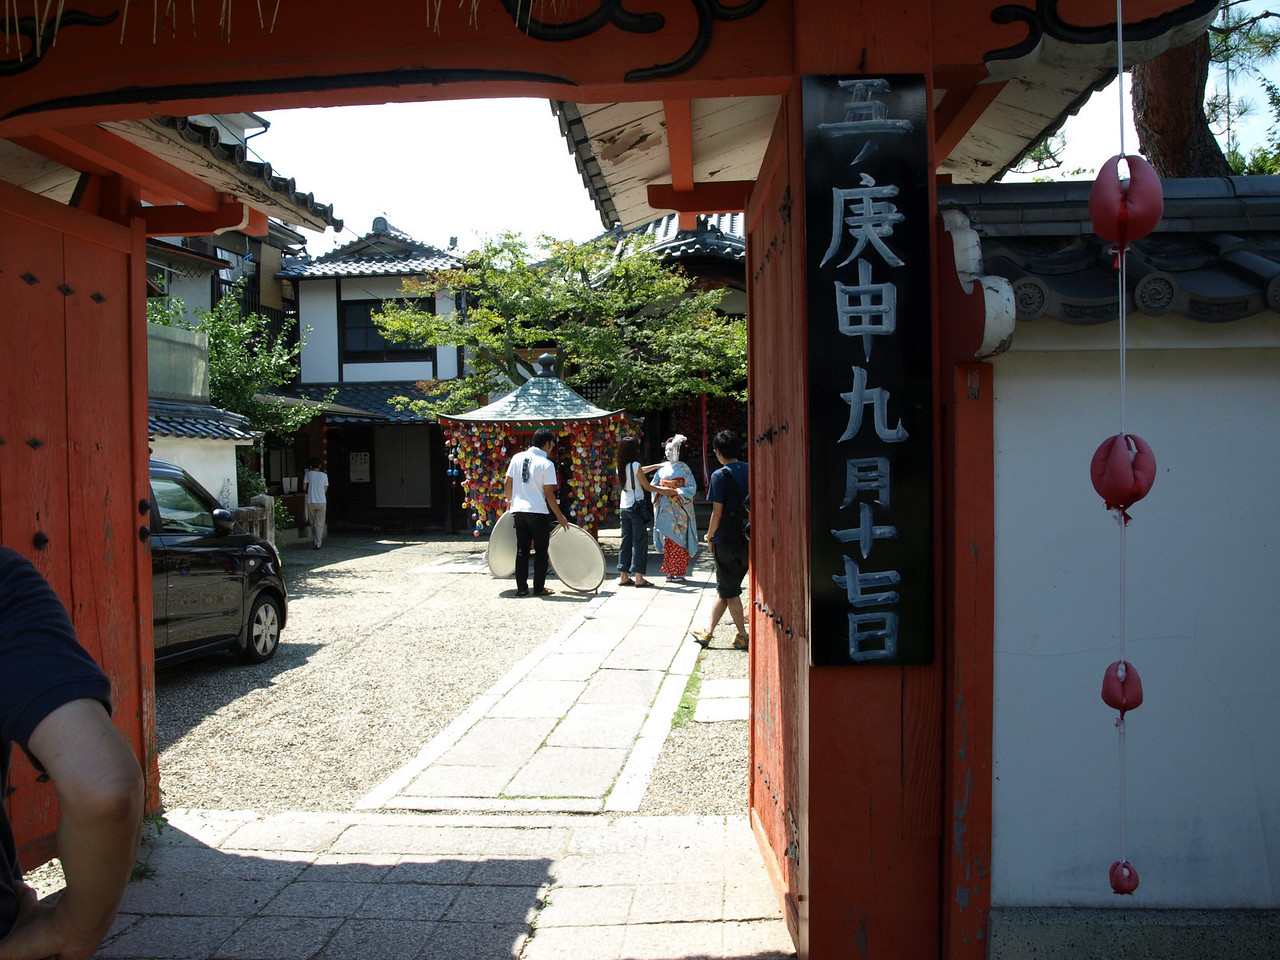 As we walked down Yasaka Street, we saw a maiko preparing for a photo session